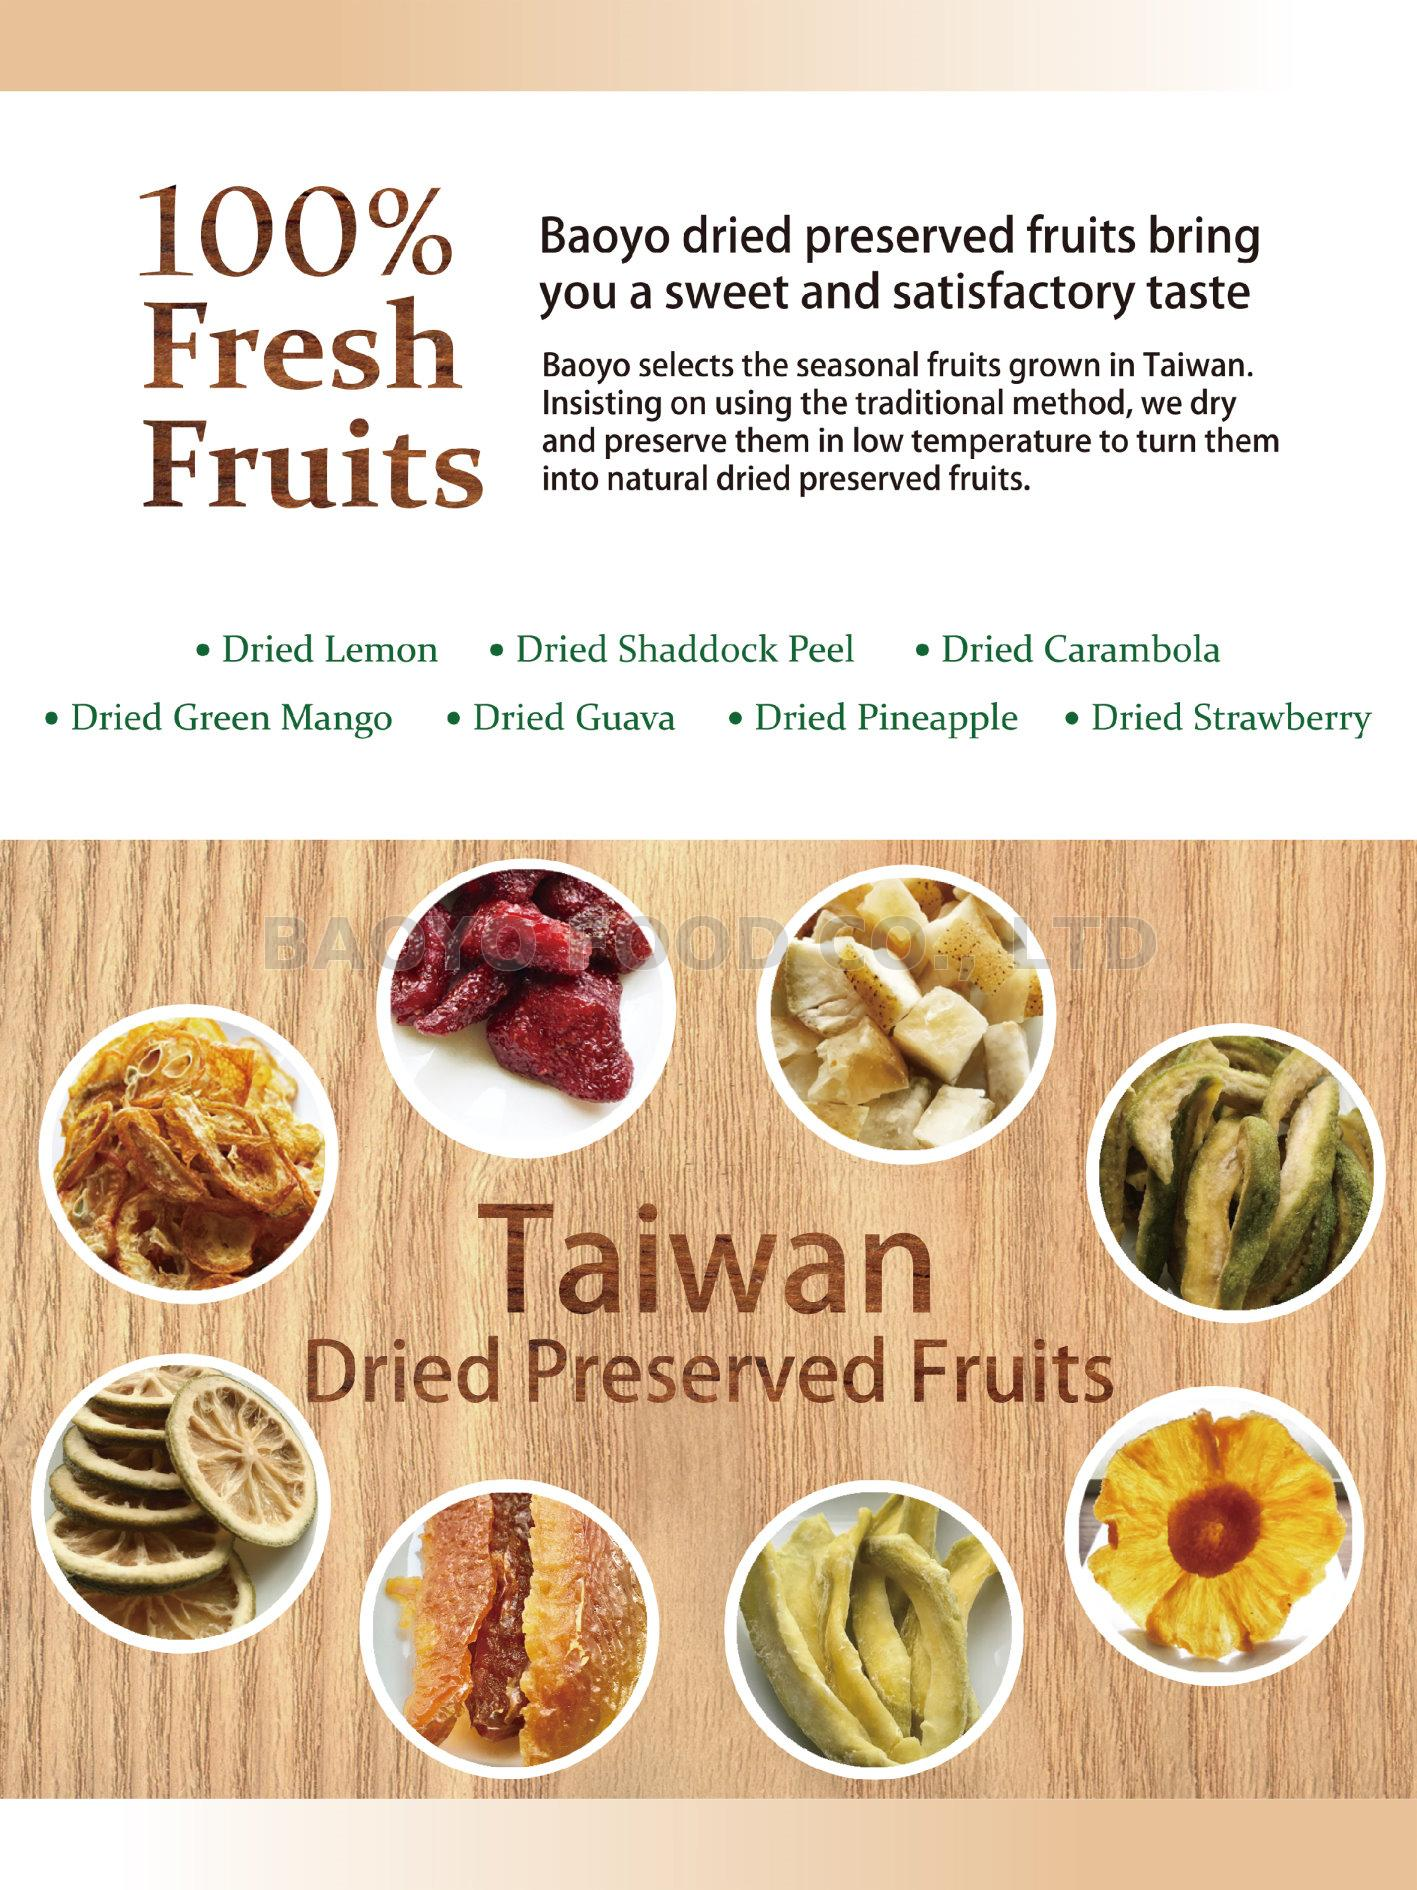 Taiwan Baoyo Dried Preserved Fruits | Taiwantrade